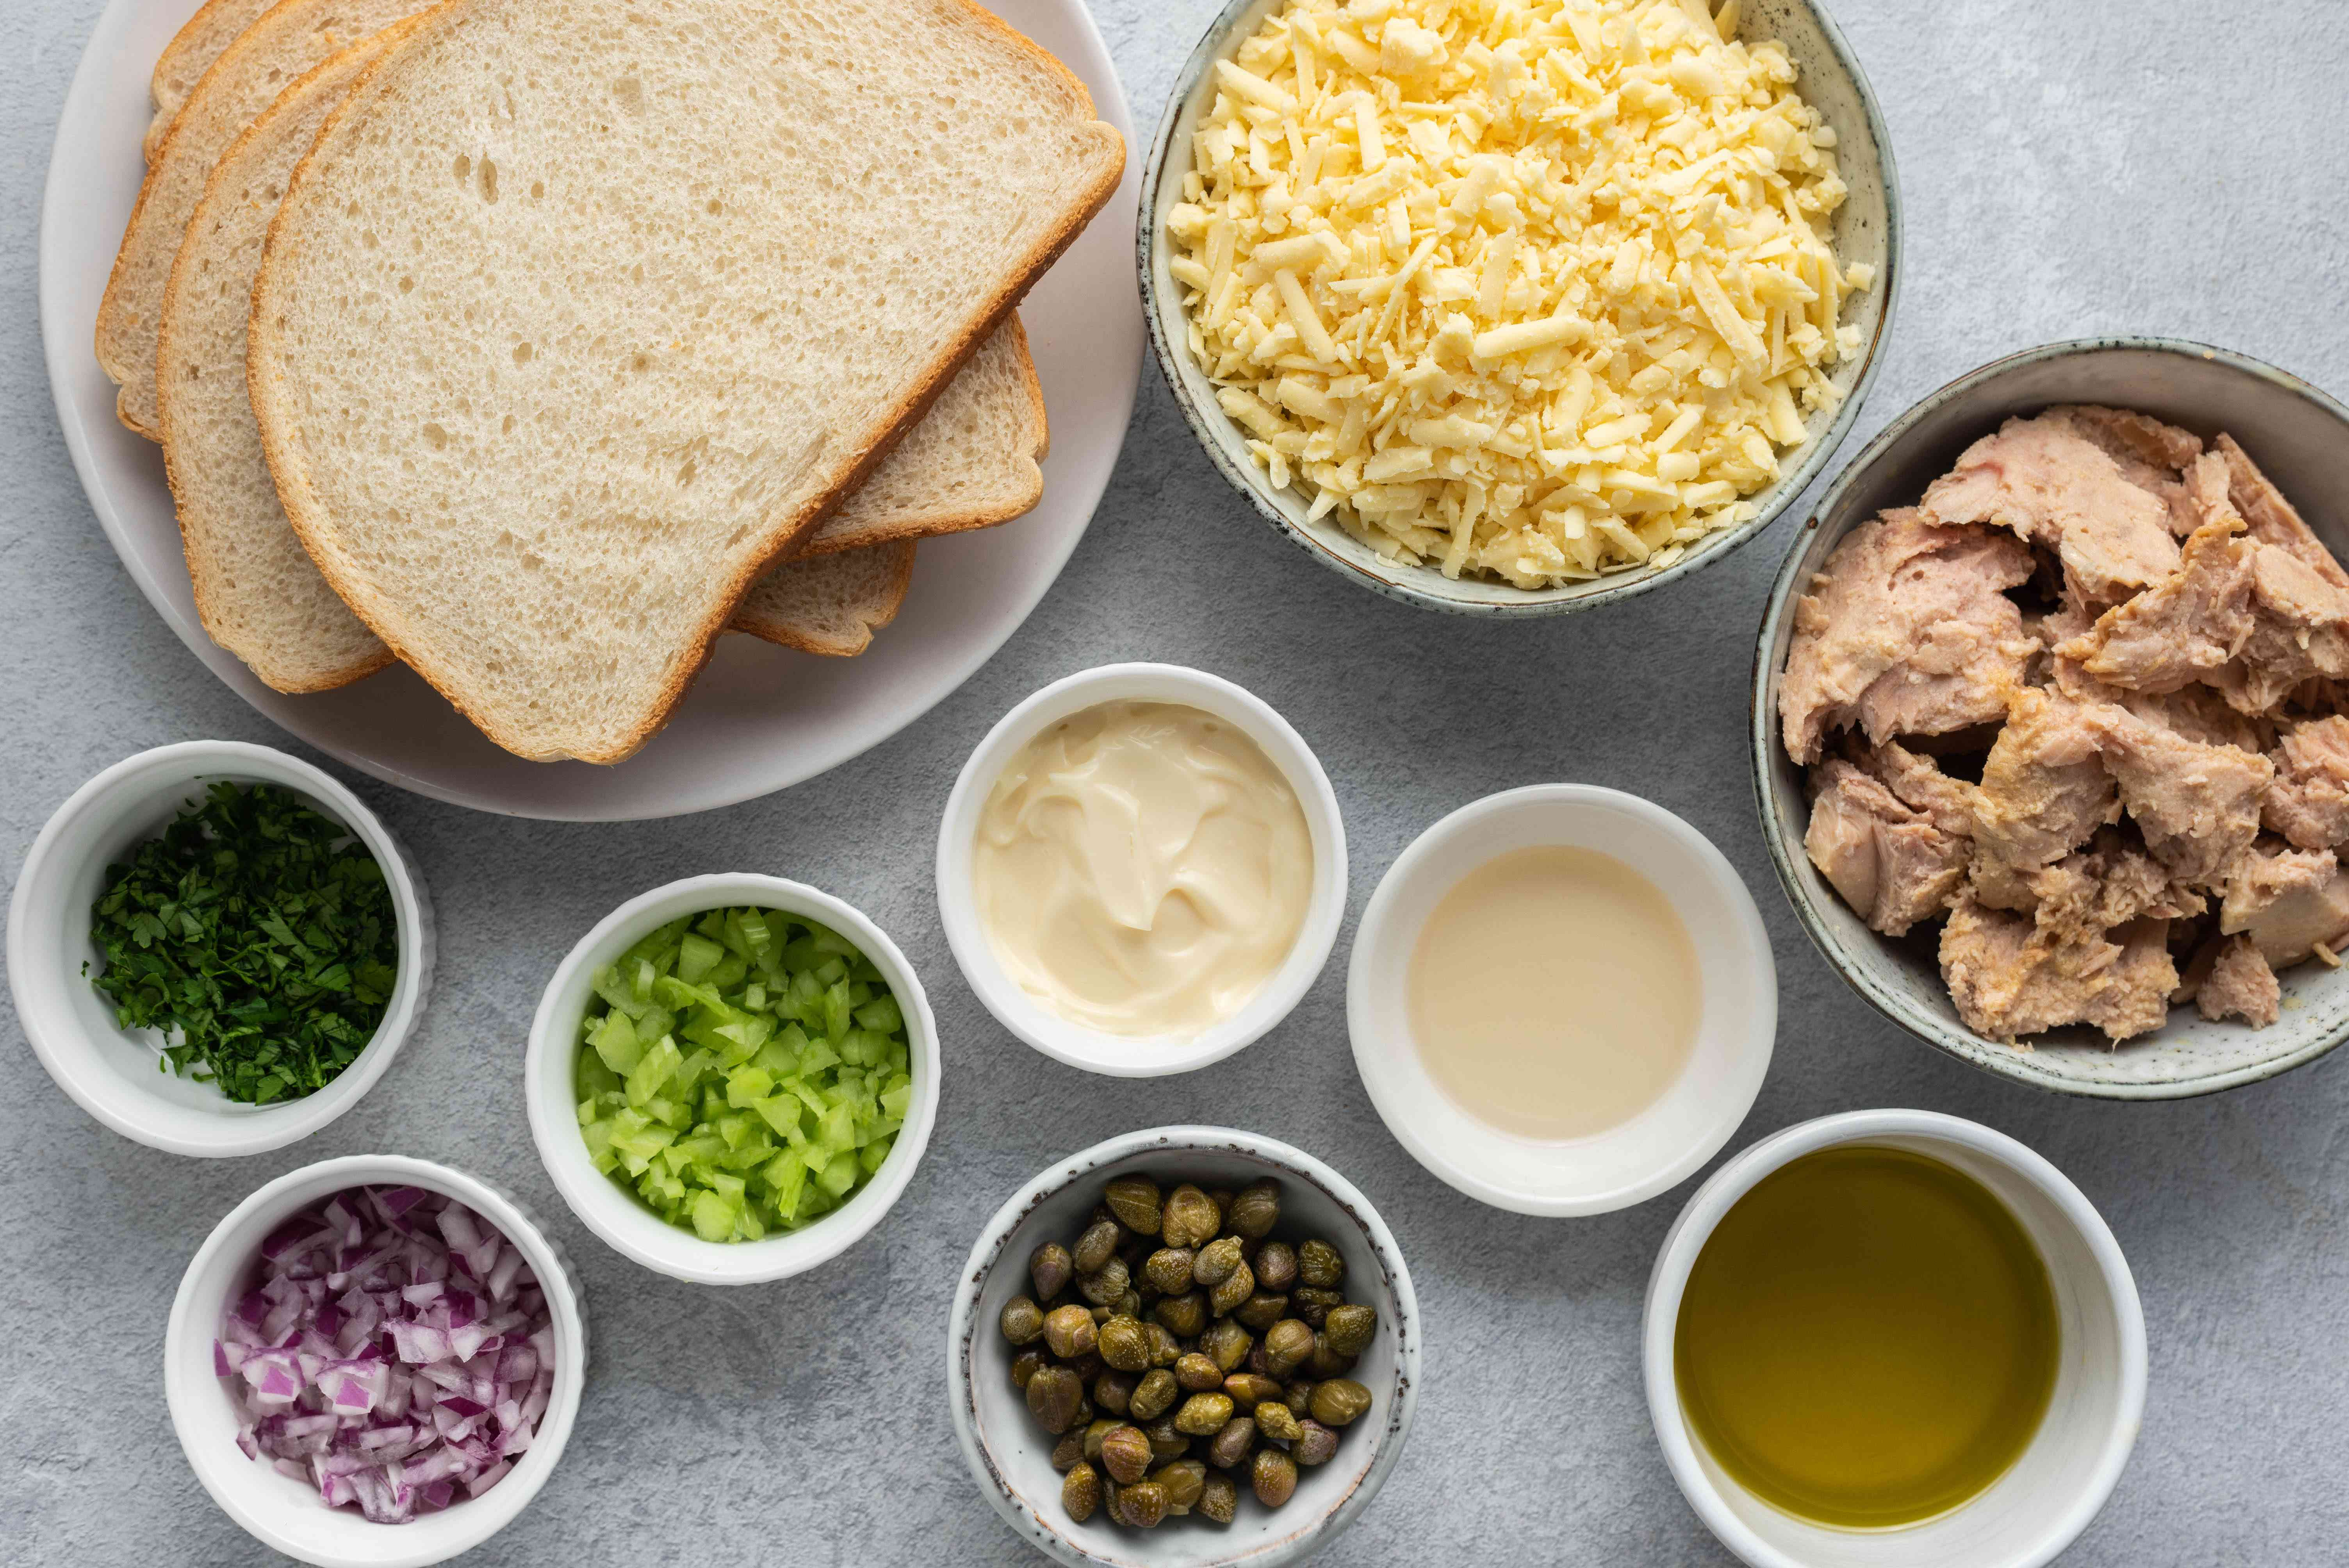 The Ultimate Tuna Melt ingredients